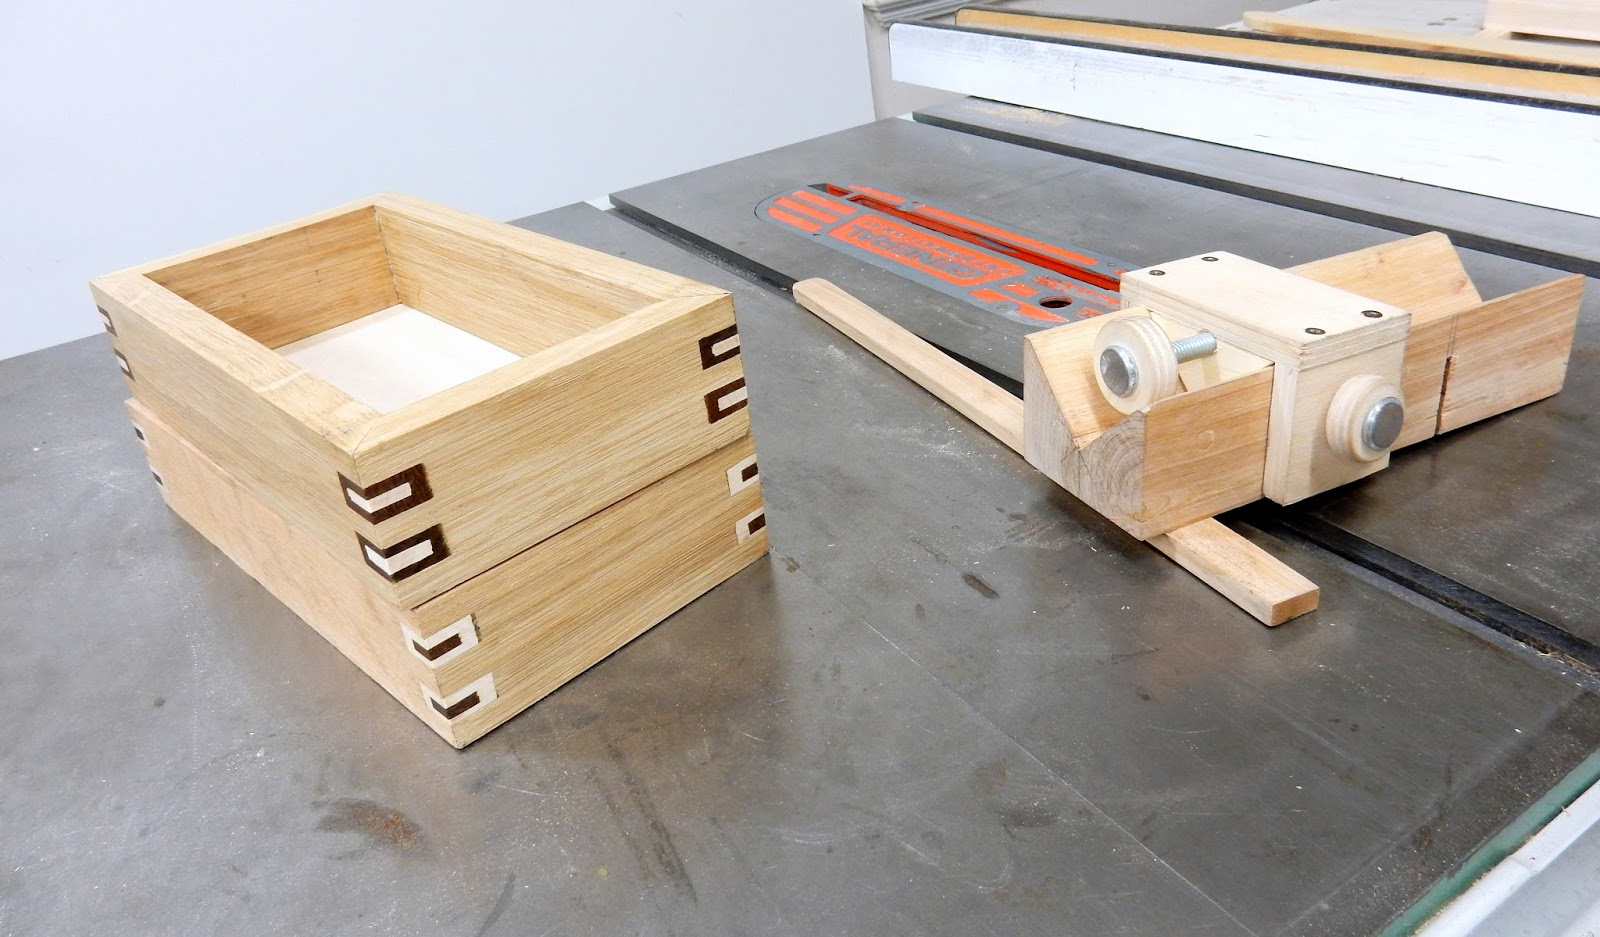 Decorative Boxes How To Make : Jax design make a simple jig and build boxes with